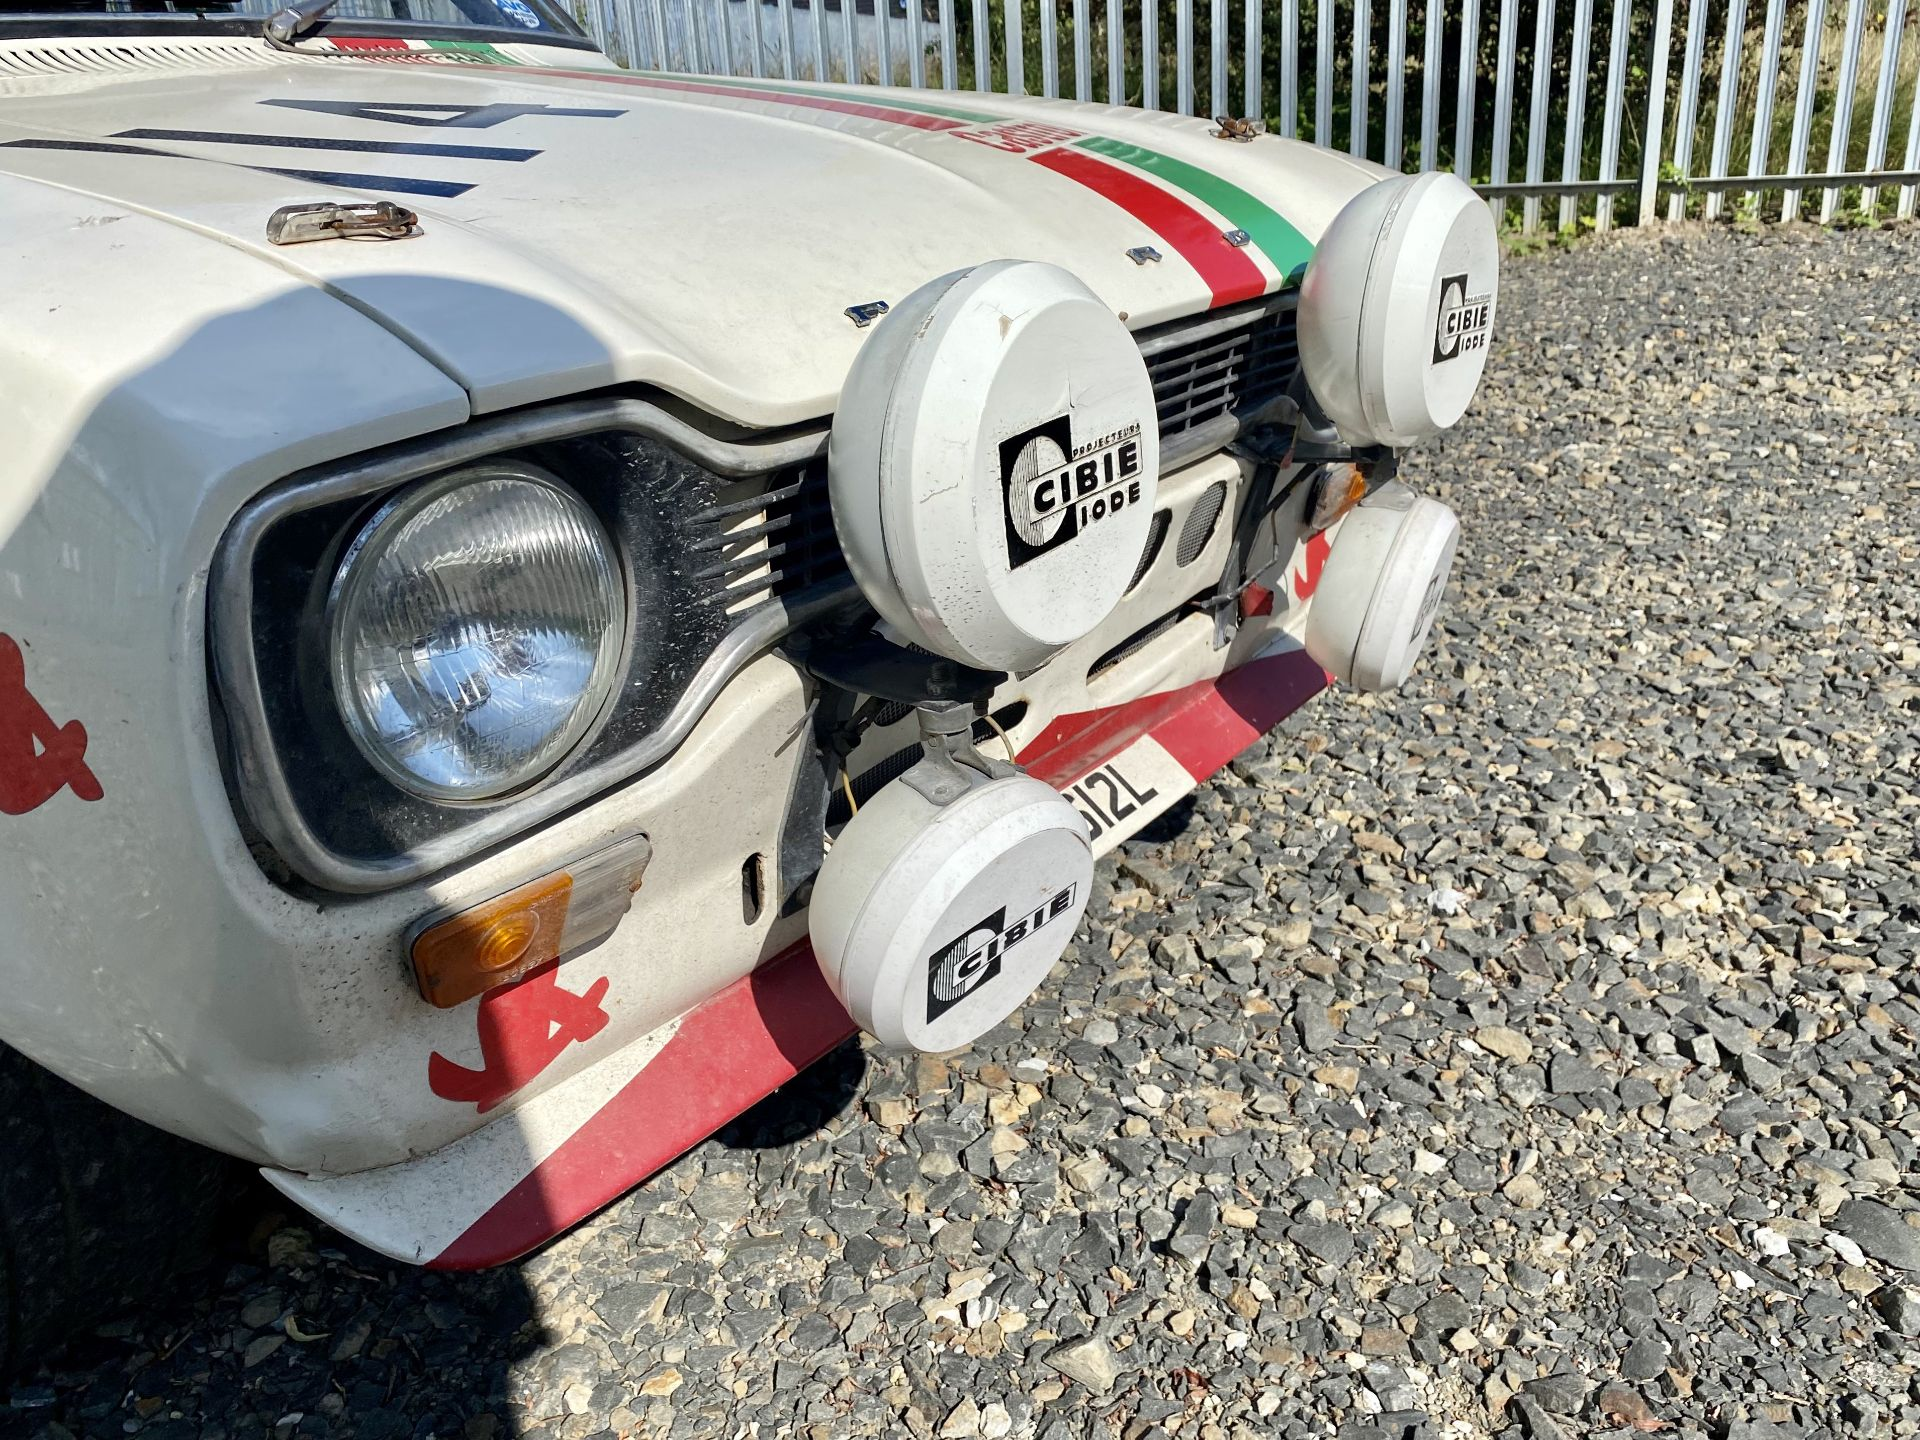 Ford Escort Mexico - Image 46 of 51